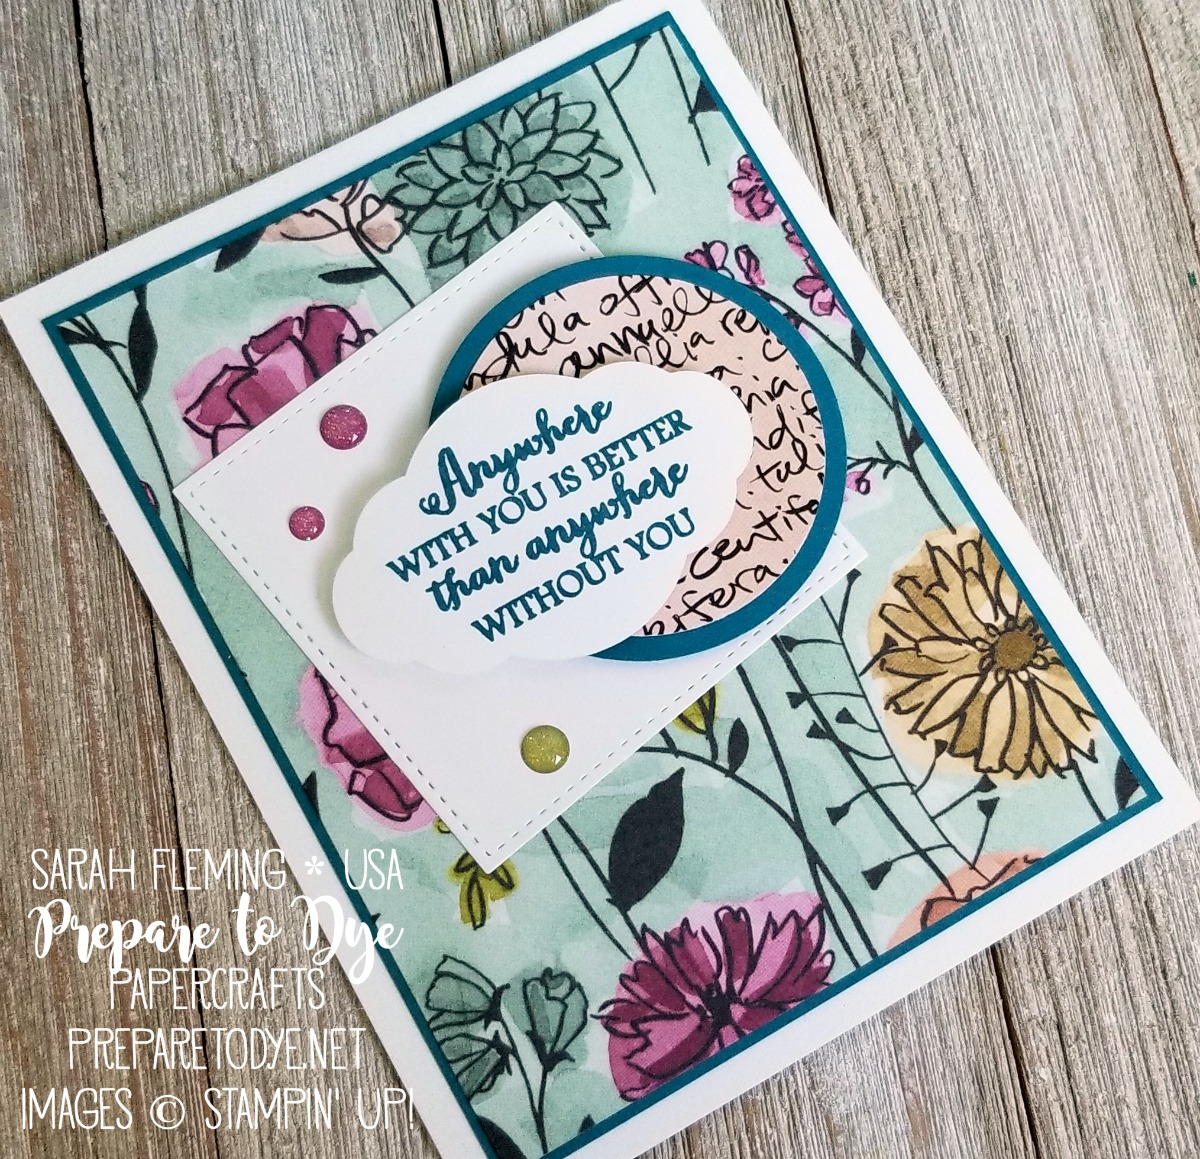 Stampin' Up! Share What You Love paper with Sitting Pretty stamps - 2018-2019 Annual Catalog - Sarah Fleming - Prepare to Dye Papercrafts